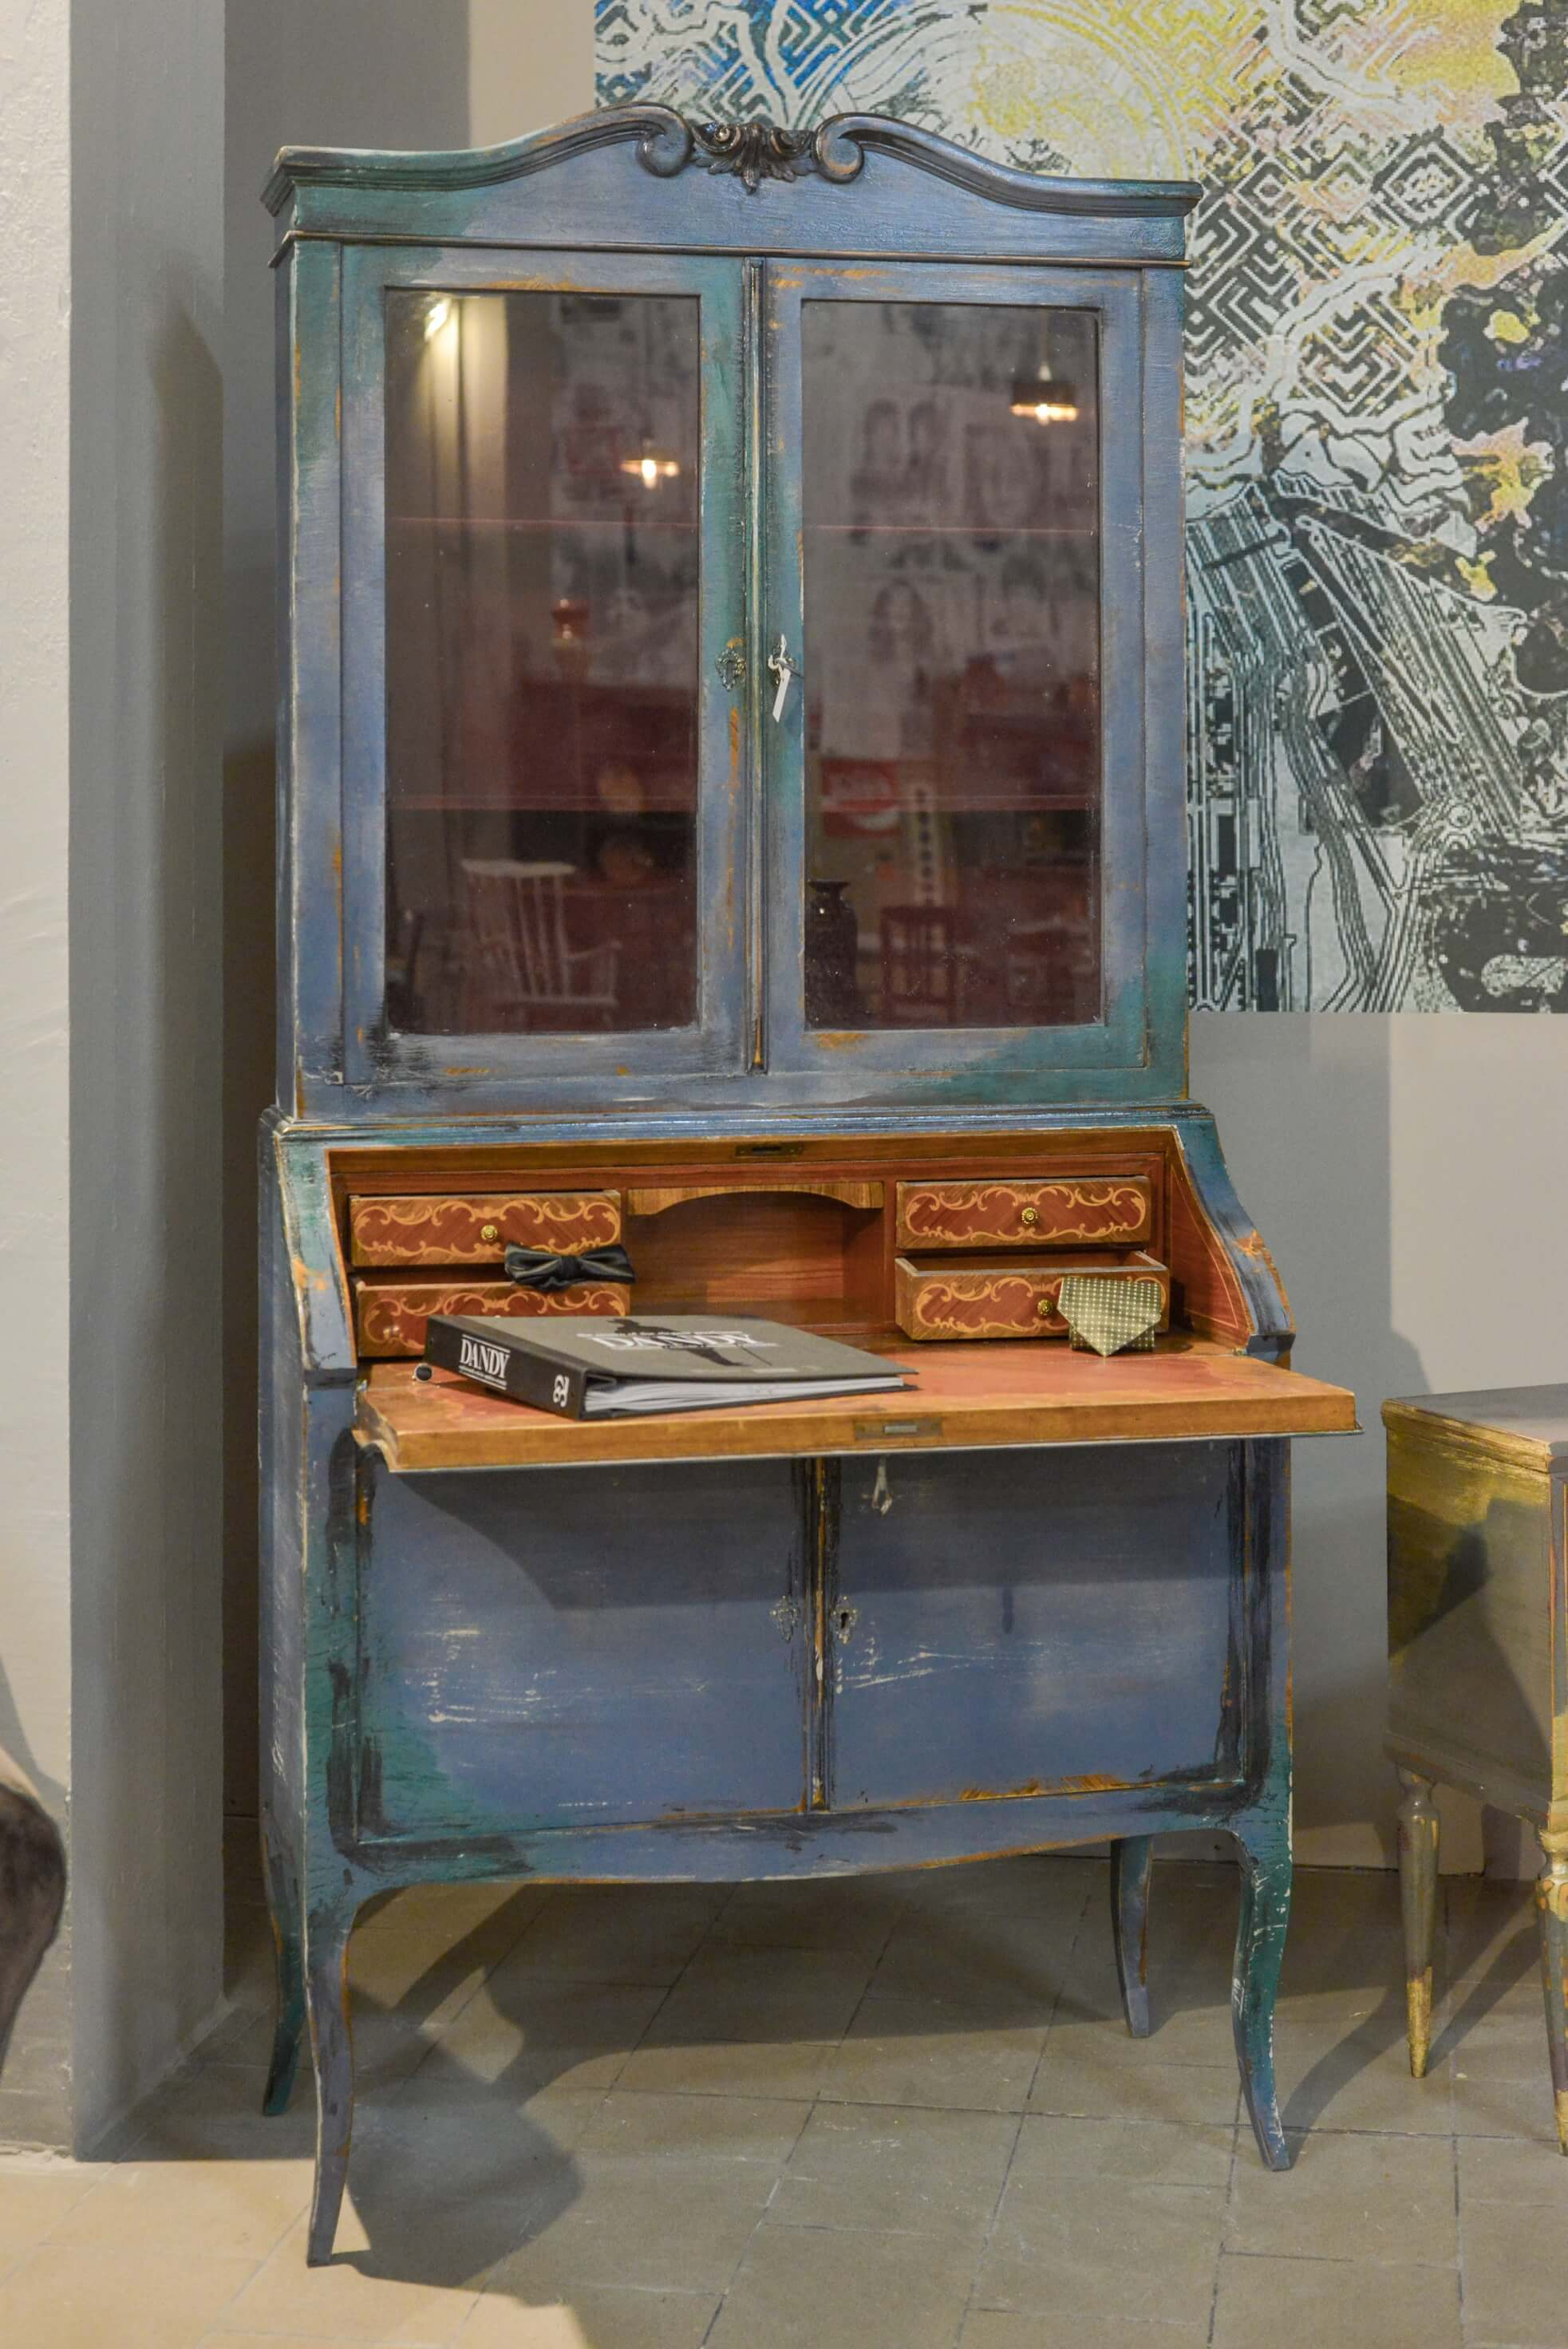 UP Italian upcycled furniture, arredamento vintage Civitanova Marche